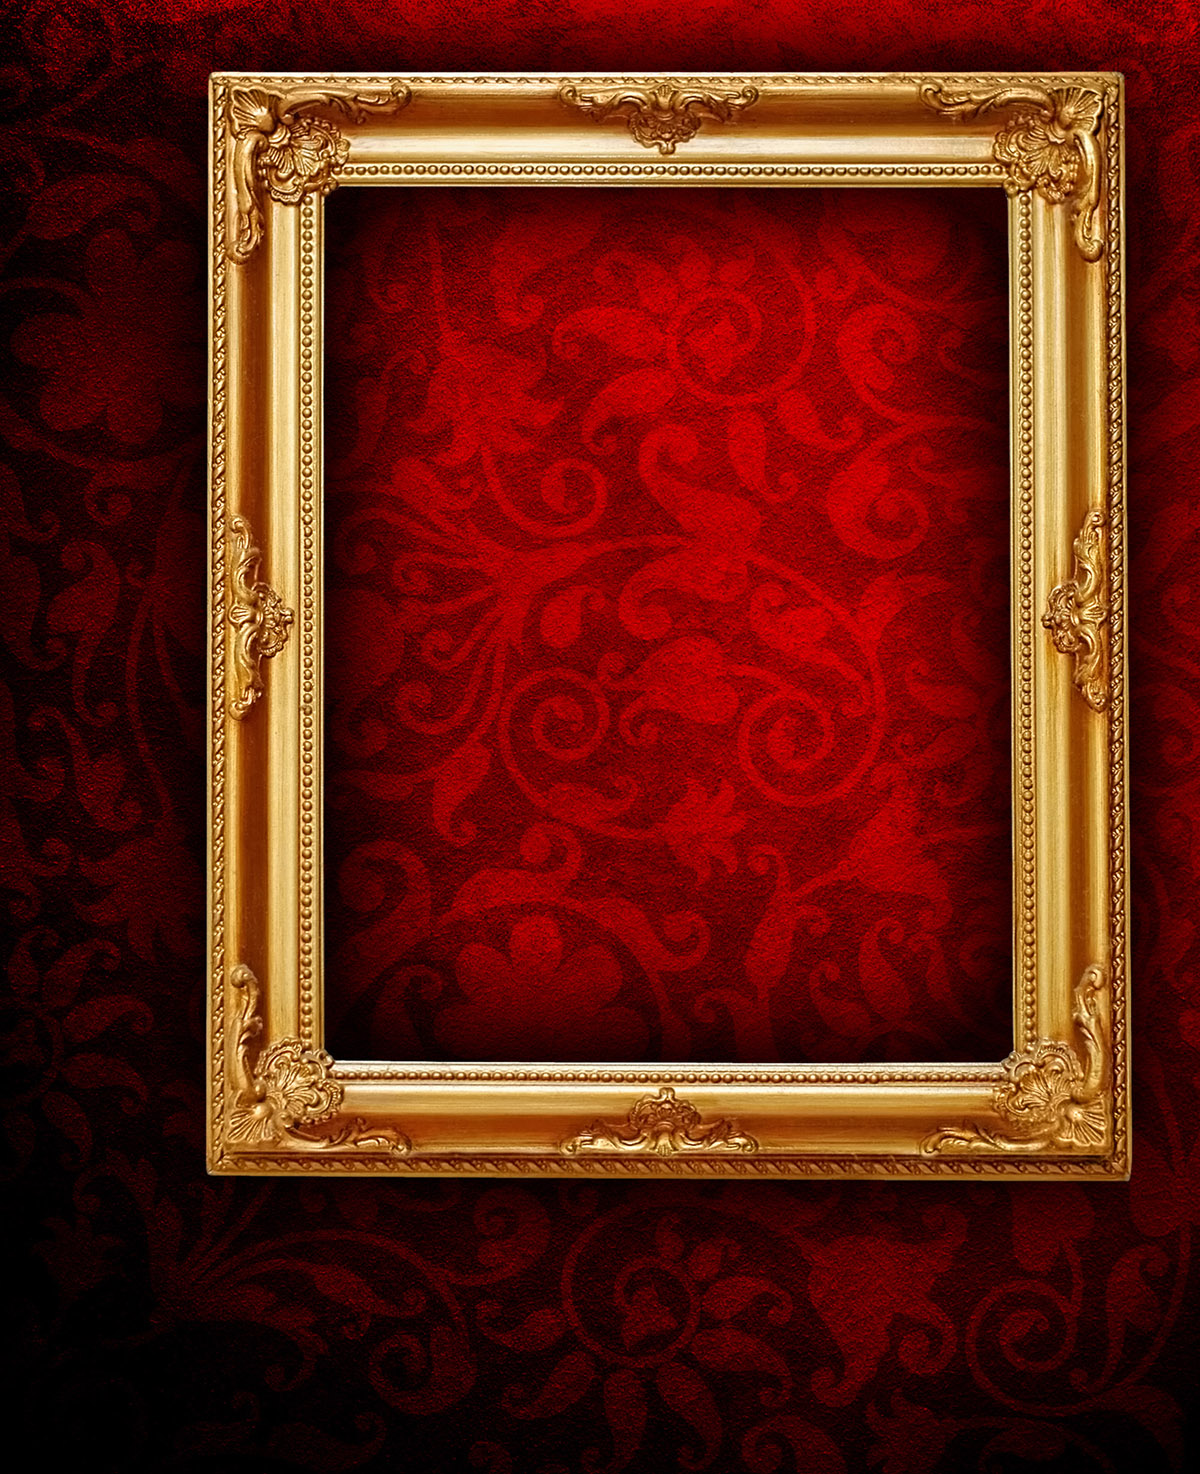 Walls and frame material 27679